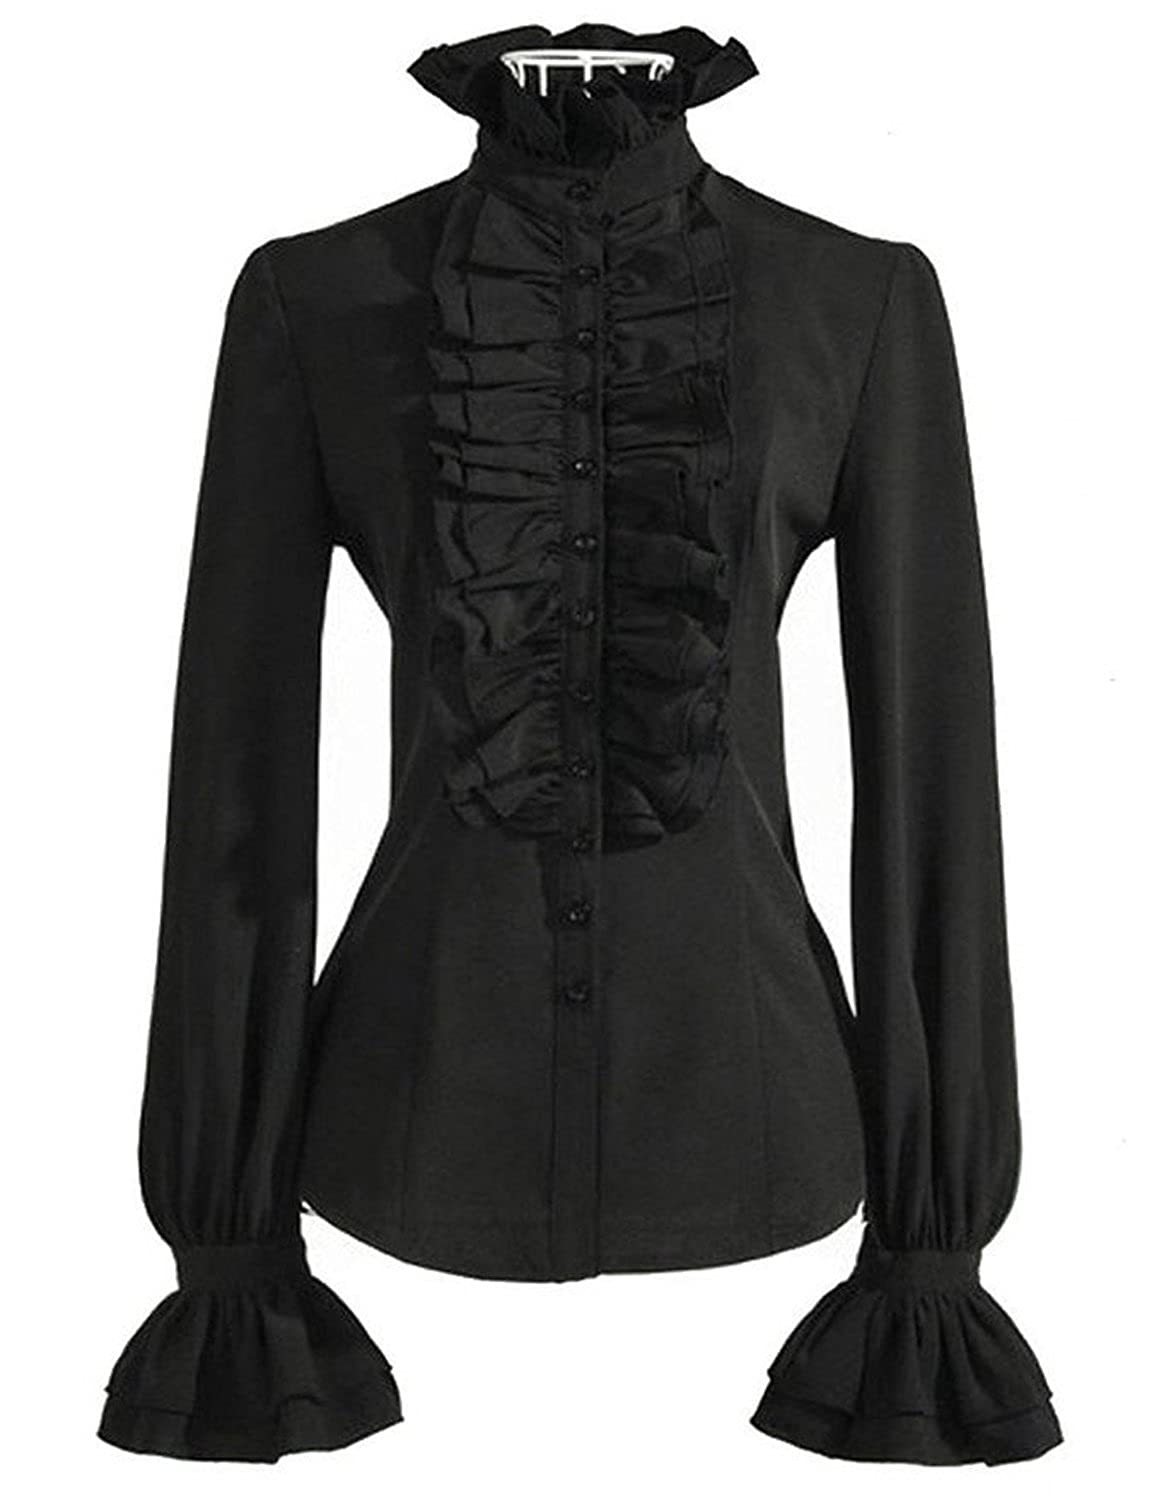 Steampunk Costume Essentials for Women Stand-Up Collar Lotus Ruffle Shirts Blouse $21.99 AT vintagedancer.com